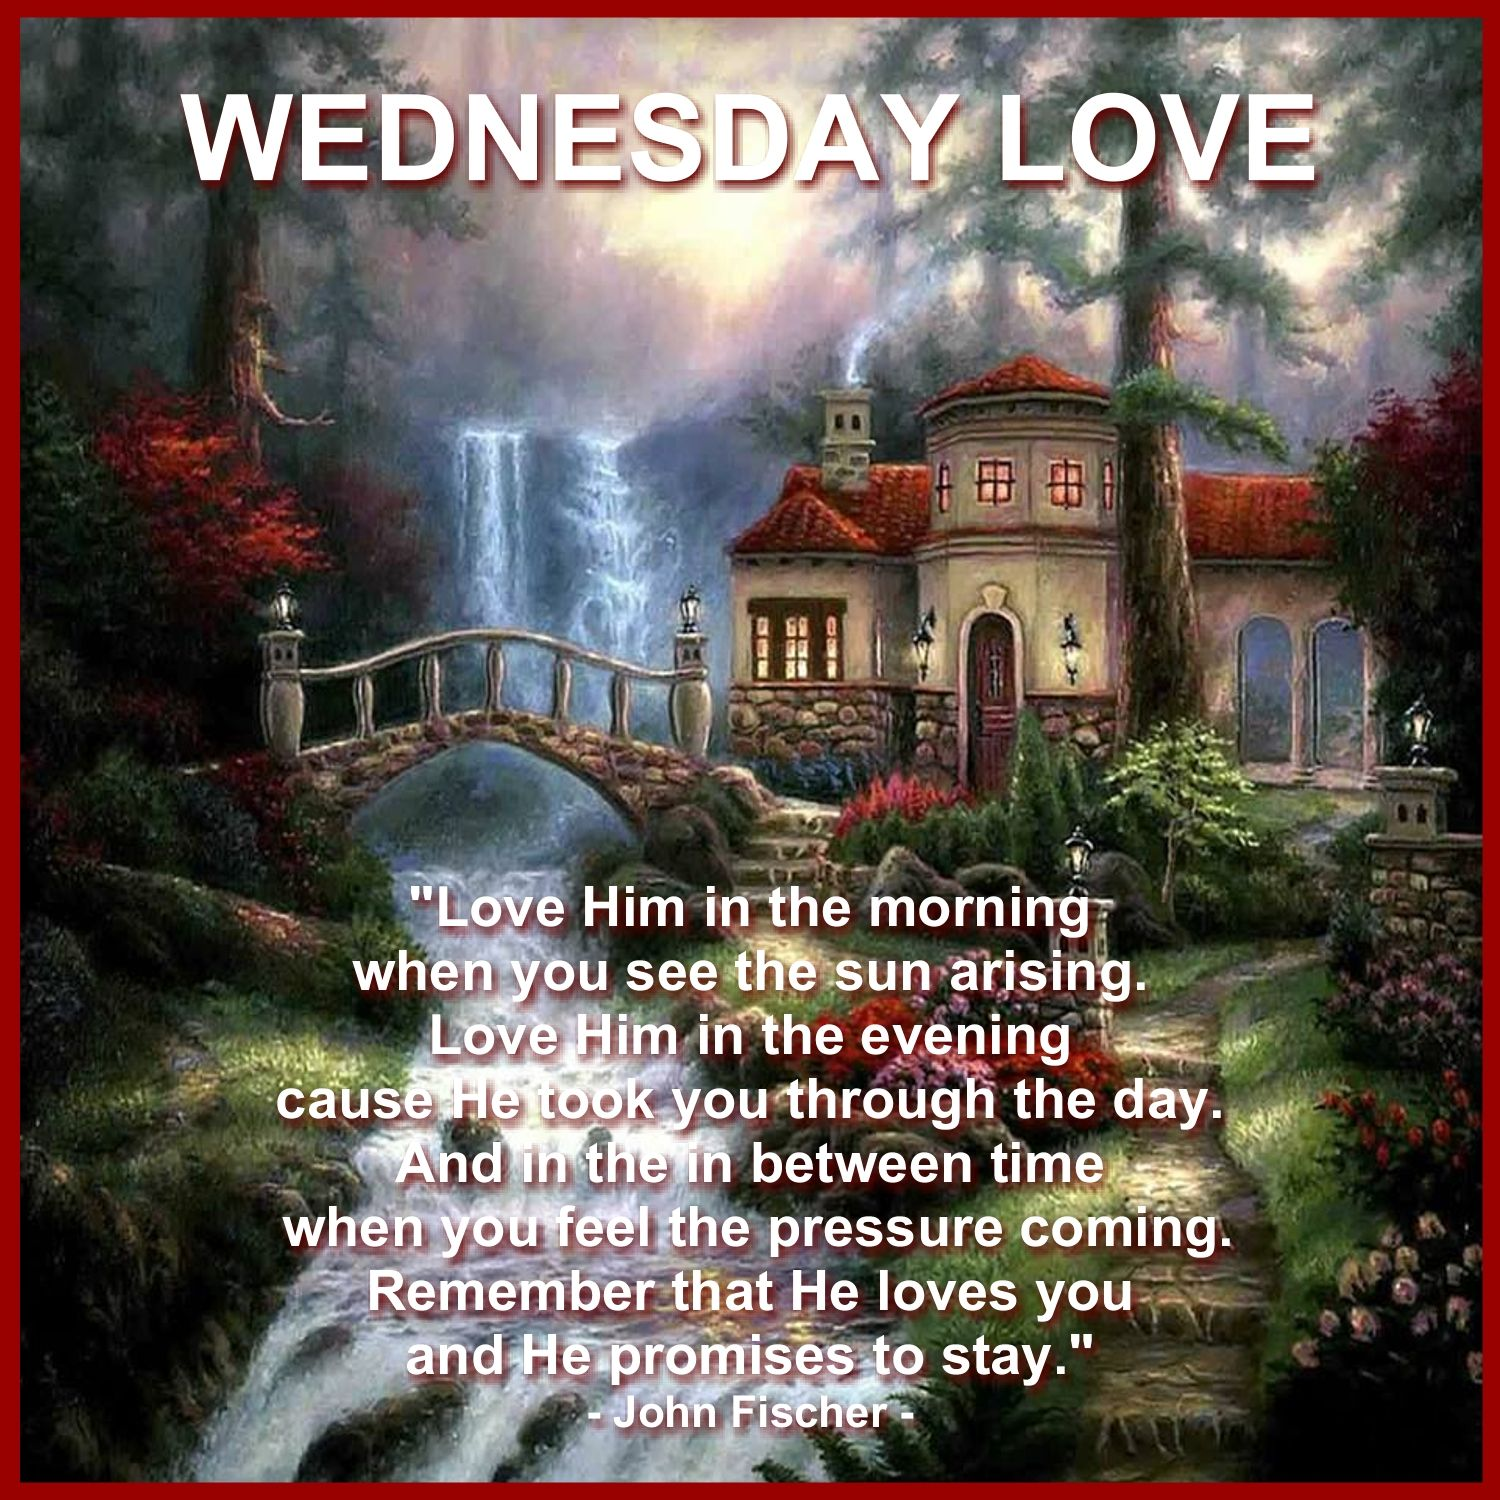 Pin By Rosa Well On Wednesday Blessings Pinterest Blessings